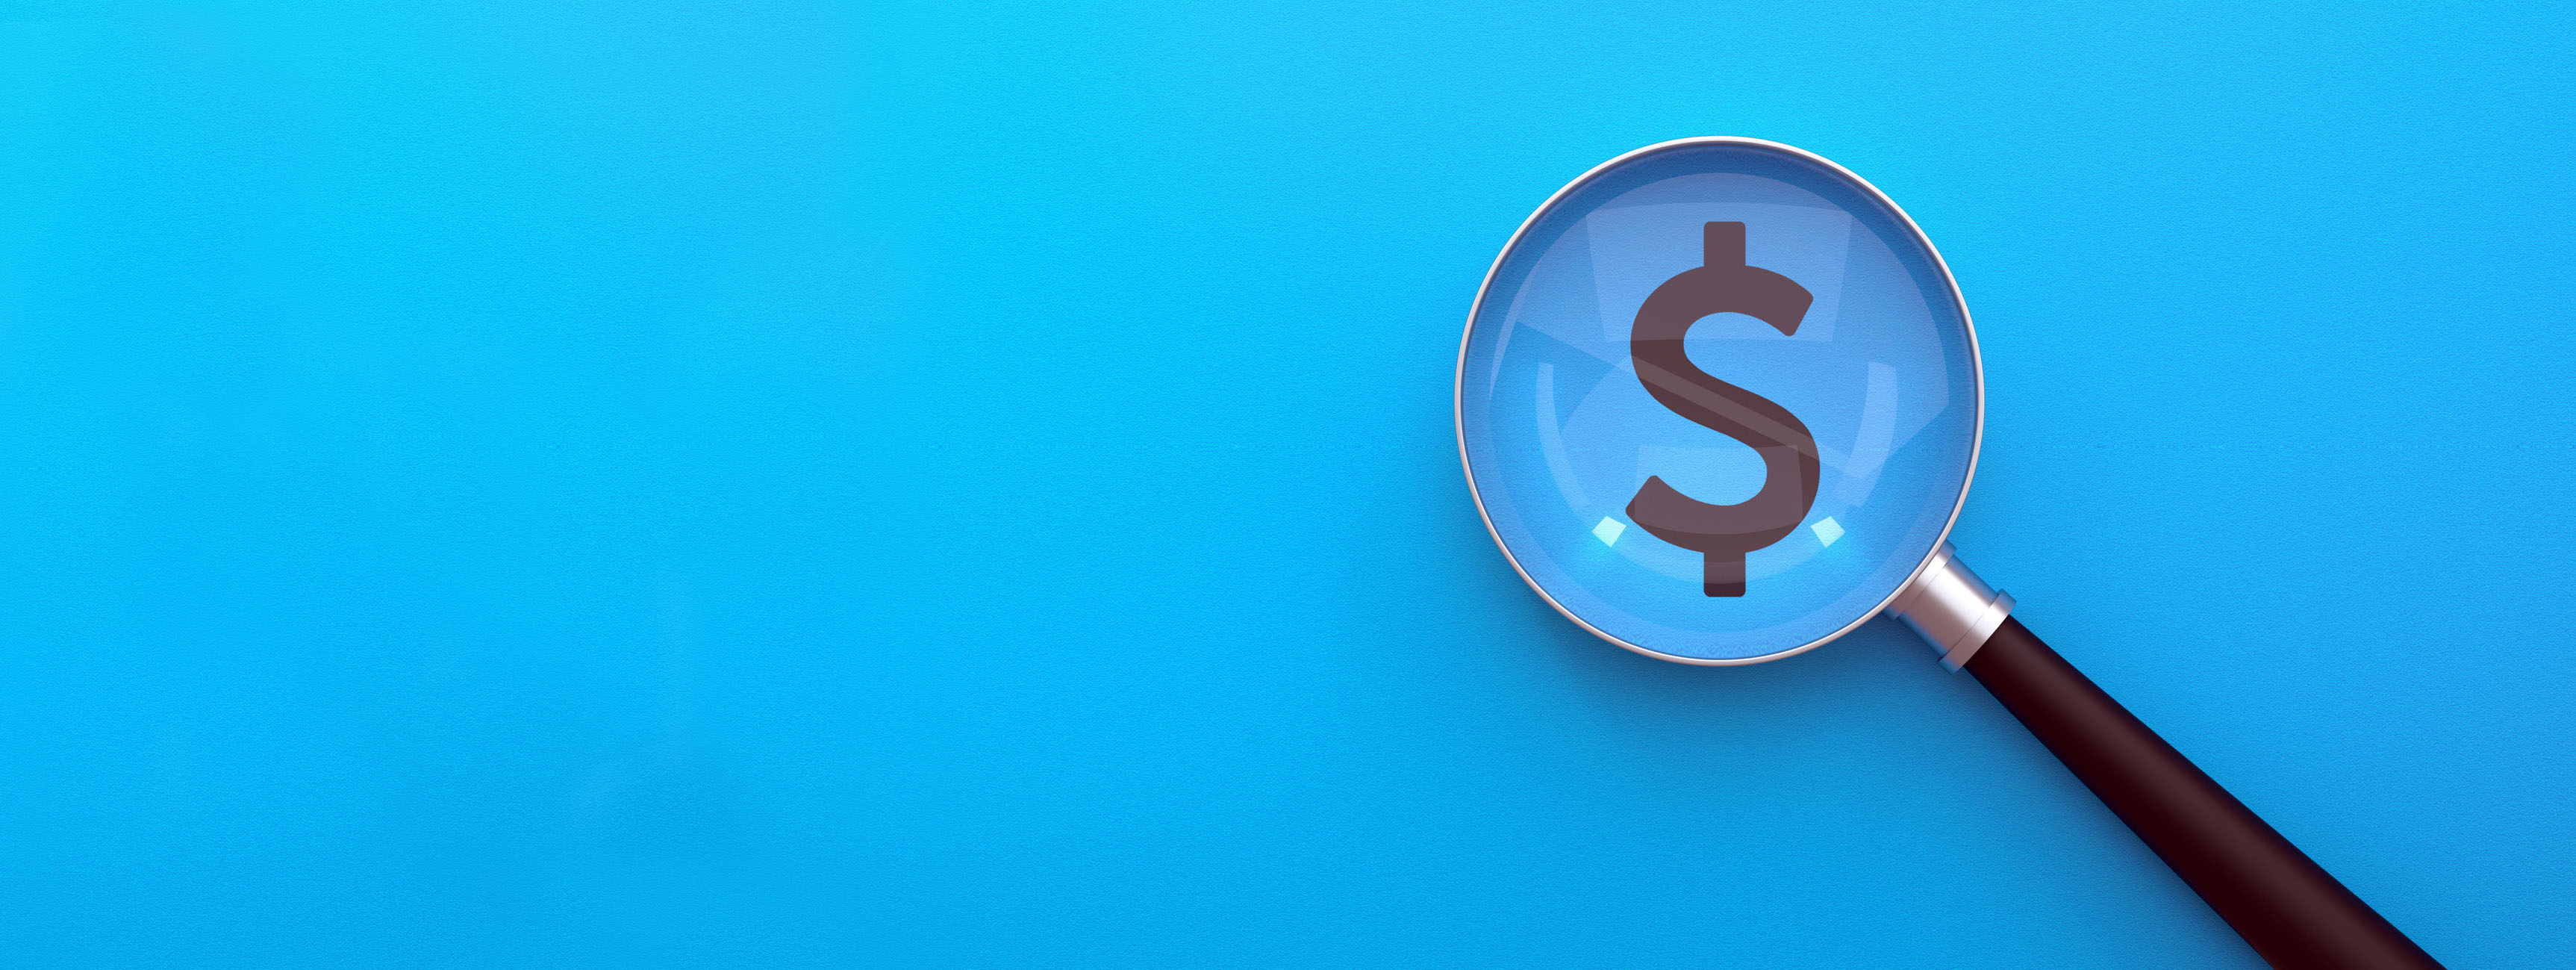 magnifying glass looking at dollar sign on blue background